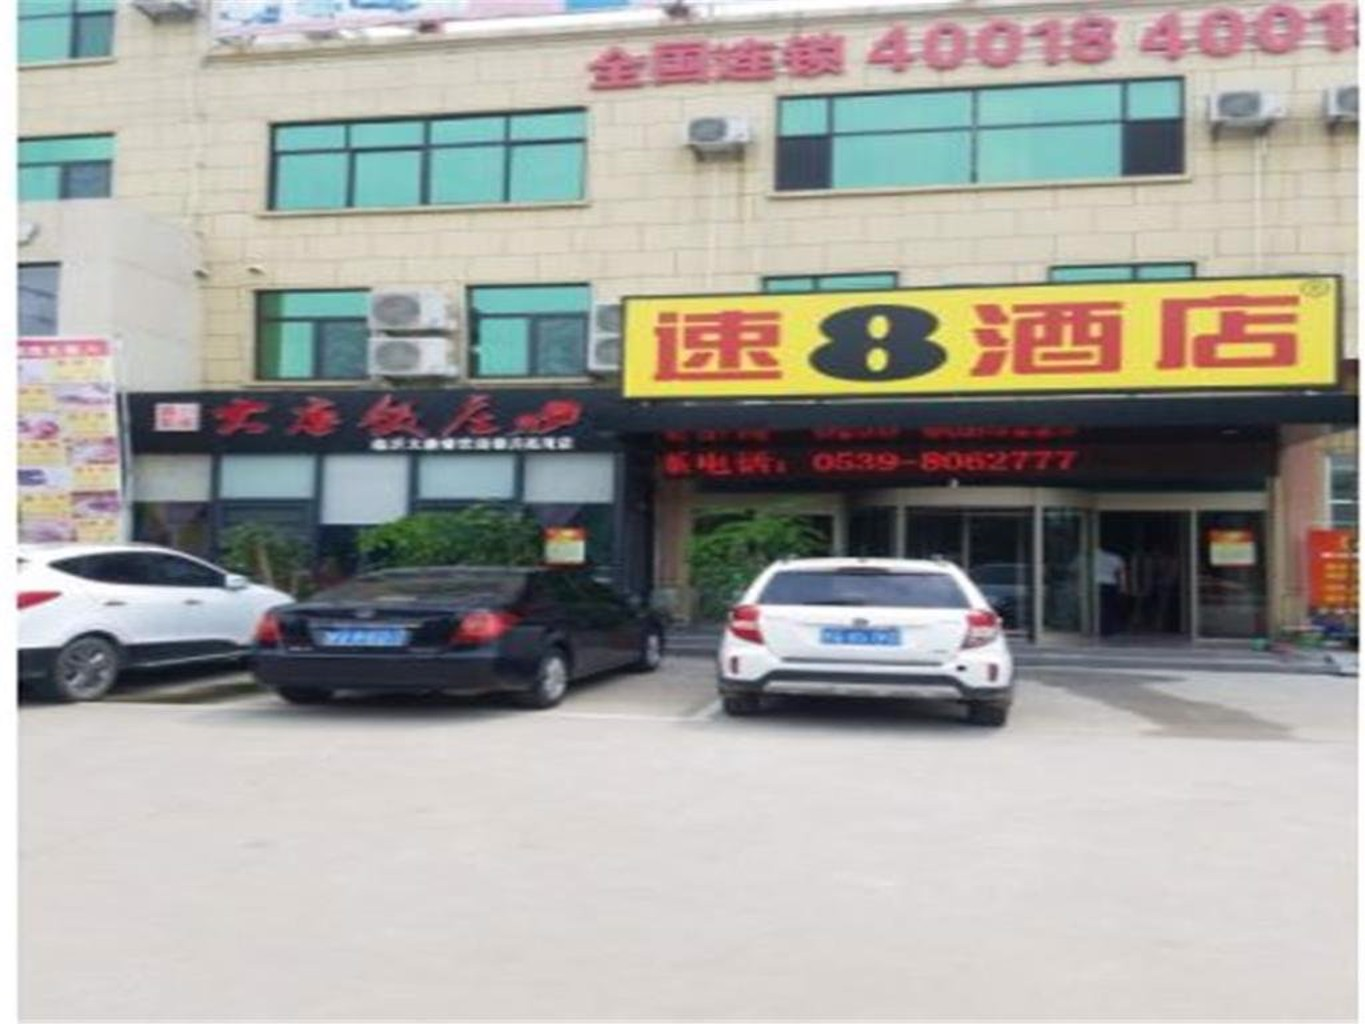 Gallery image of Linyi Jiahe Business Hotel